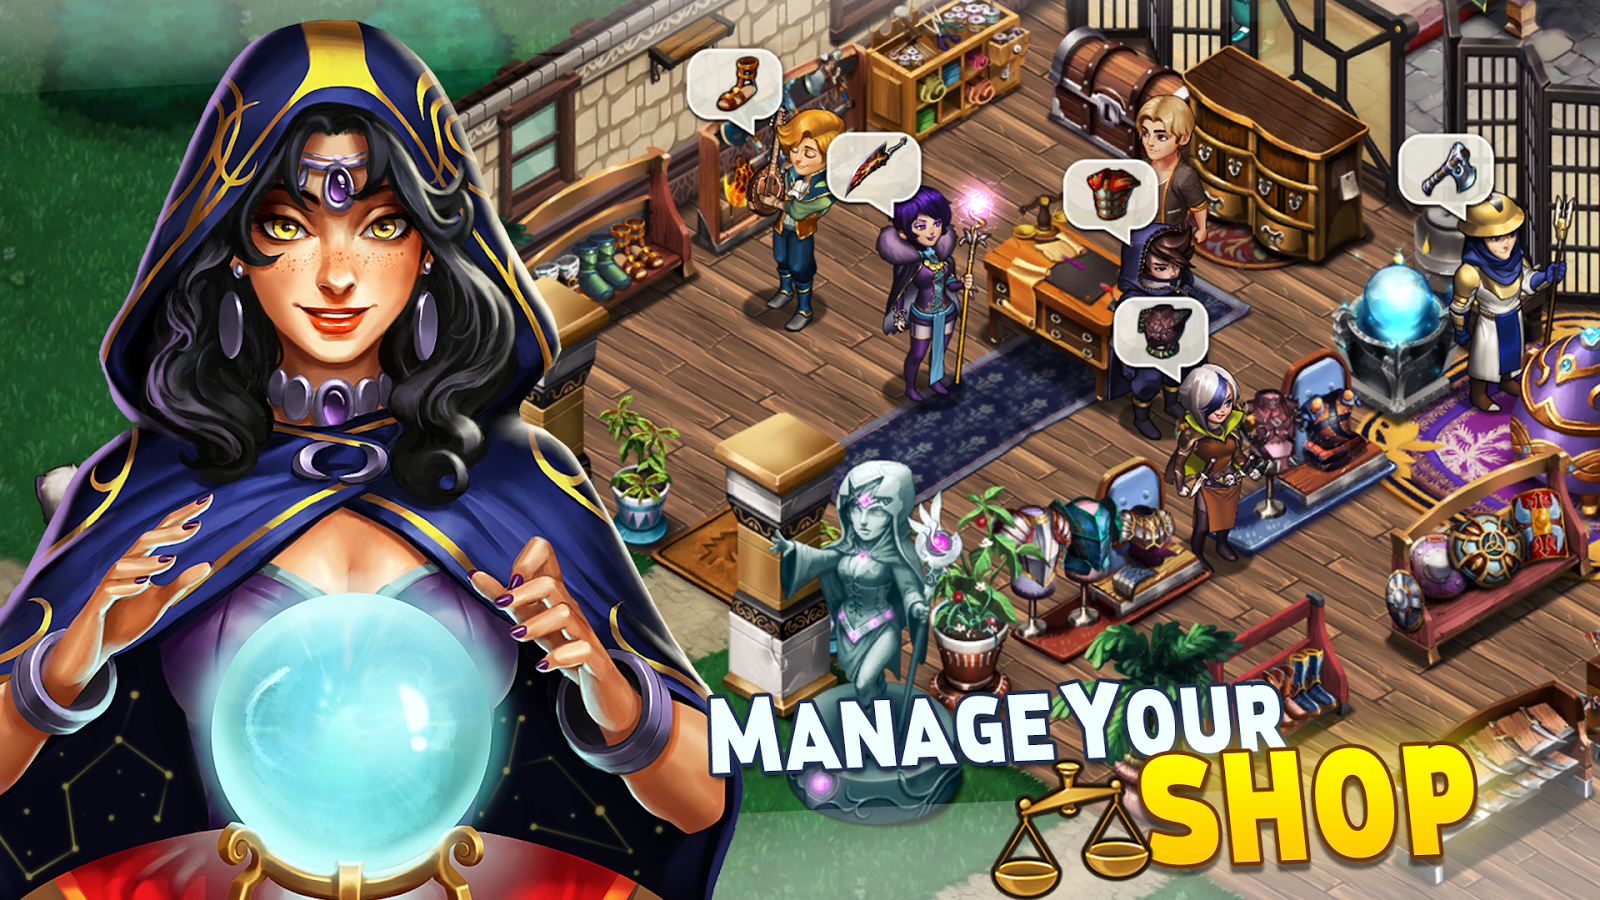 Shop Heroes Screenshot 15